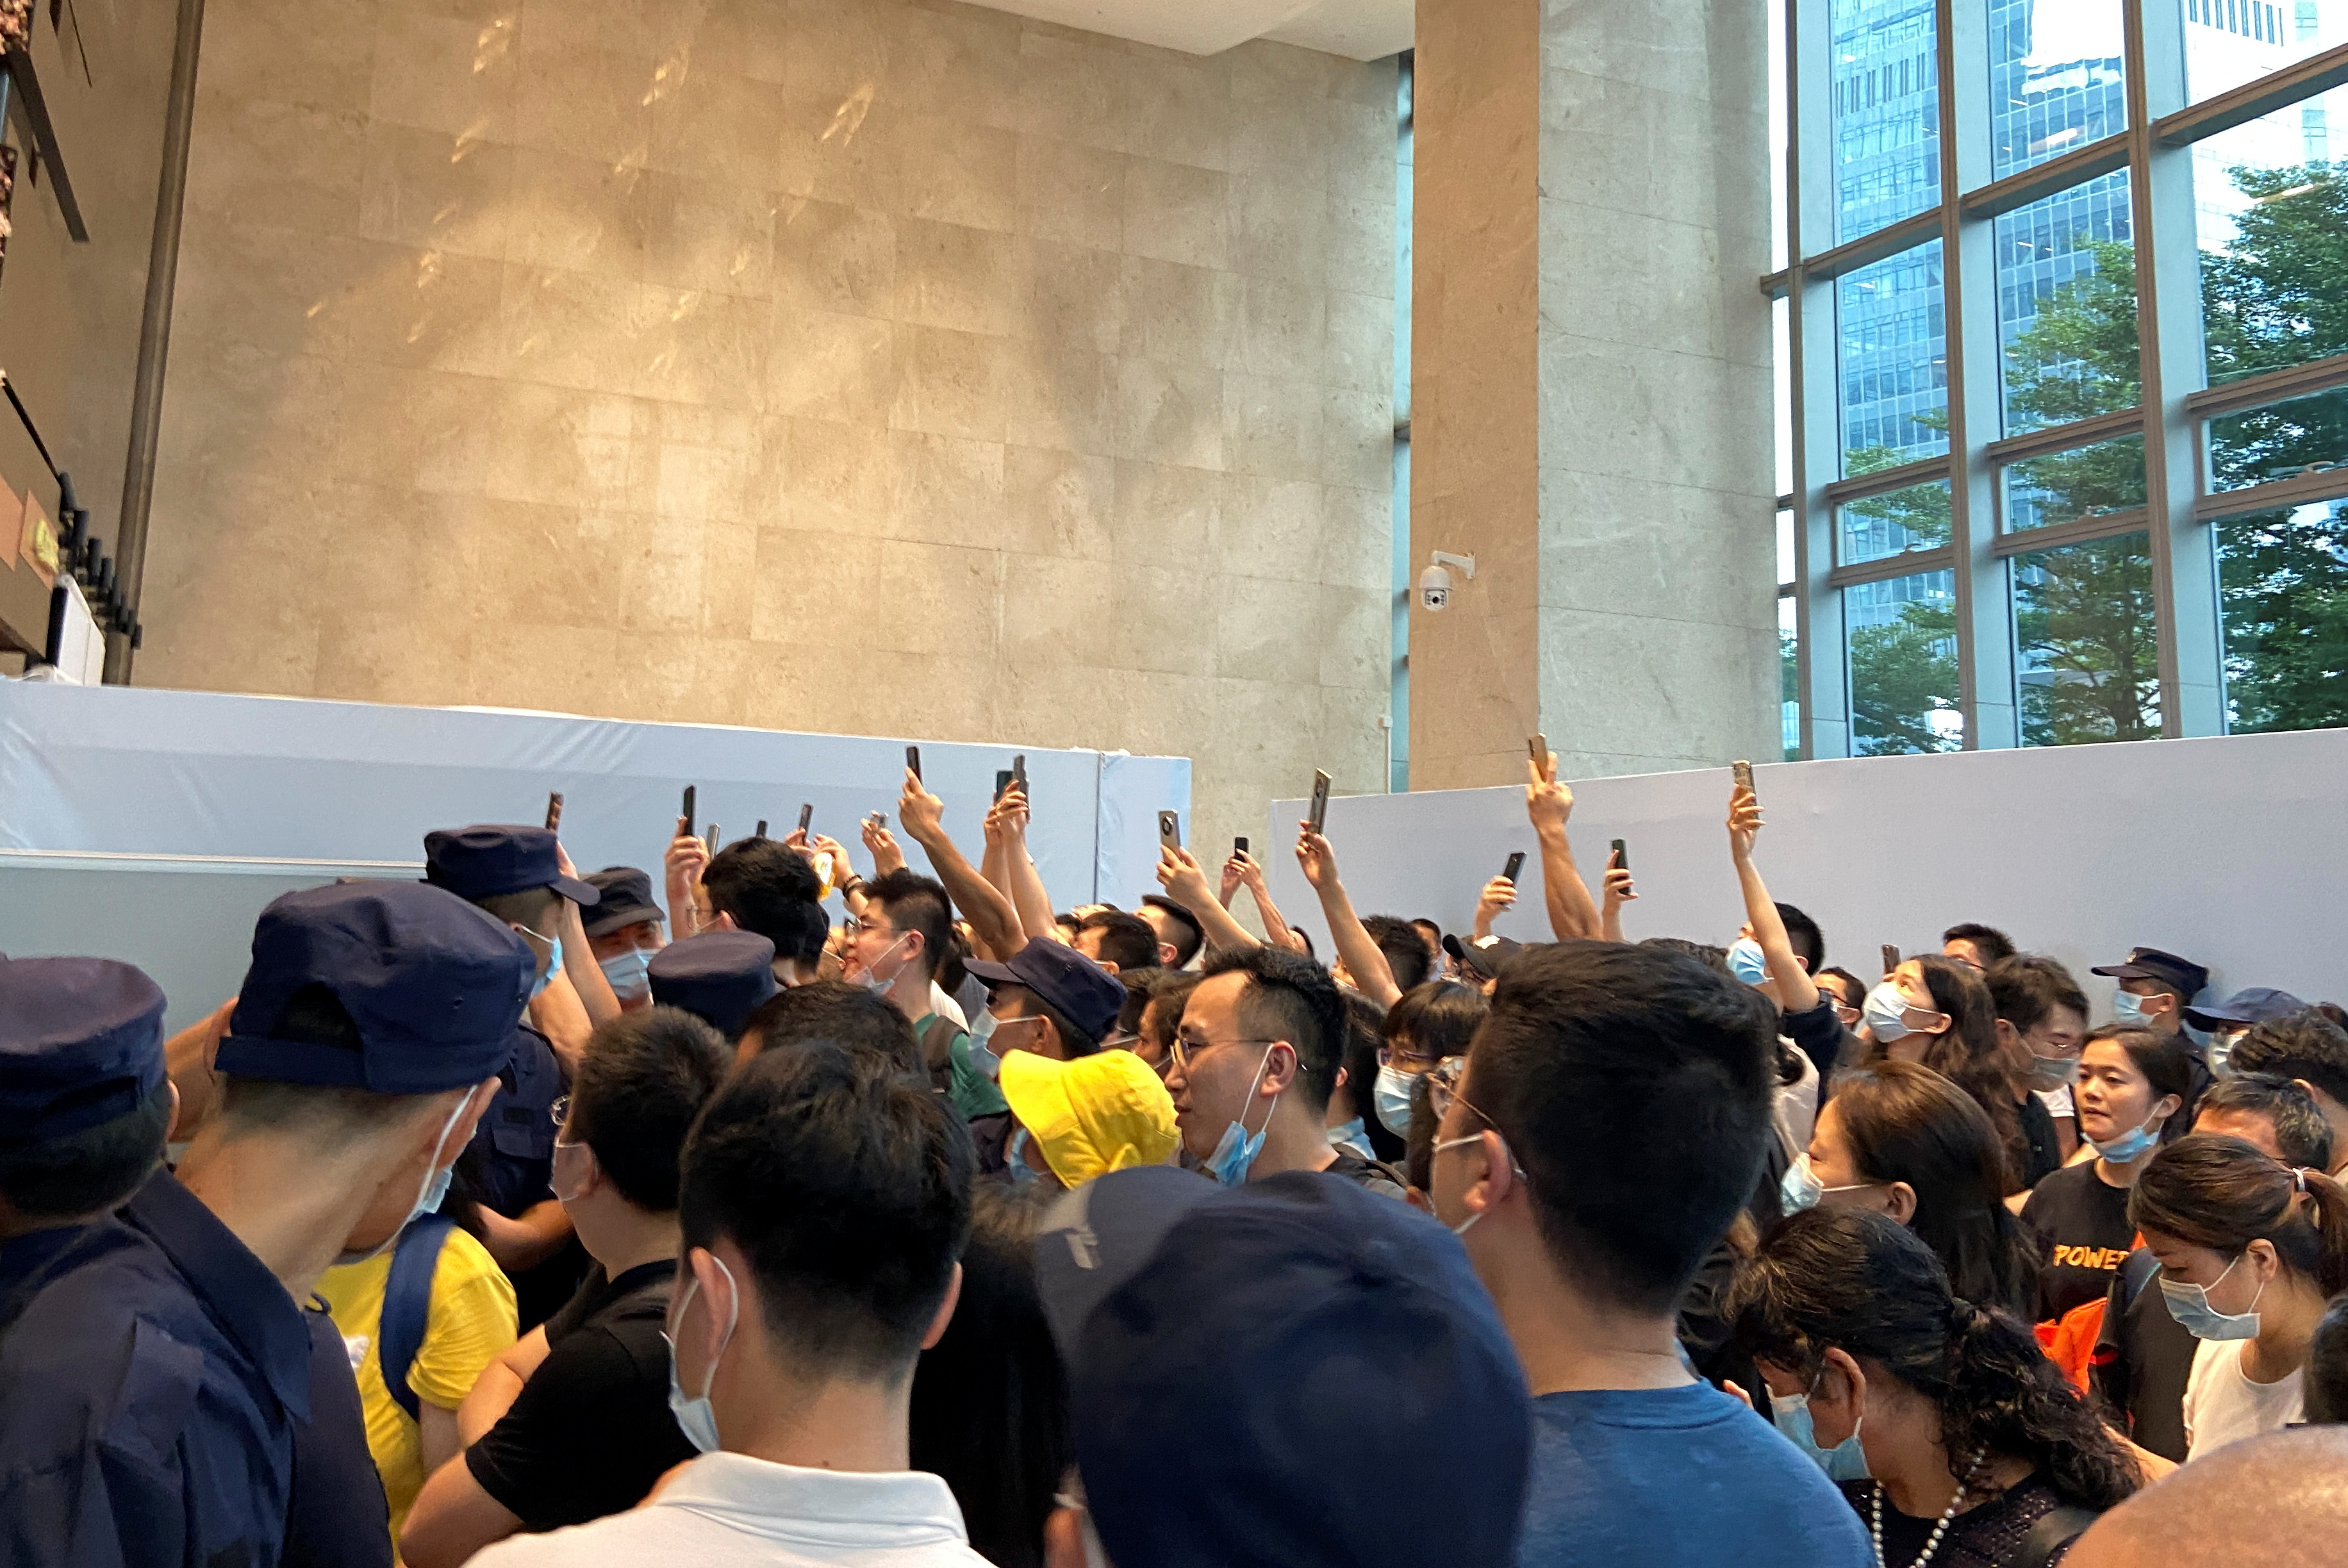 People gather to demand repayment of loans and financial products at the Evergrande's headquarters, in Shenzhen, Guangdong province, China September 13, 2021. REUTERS/David Kirton